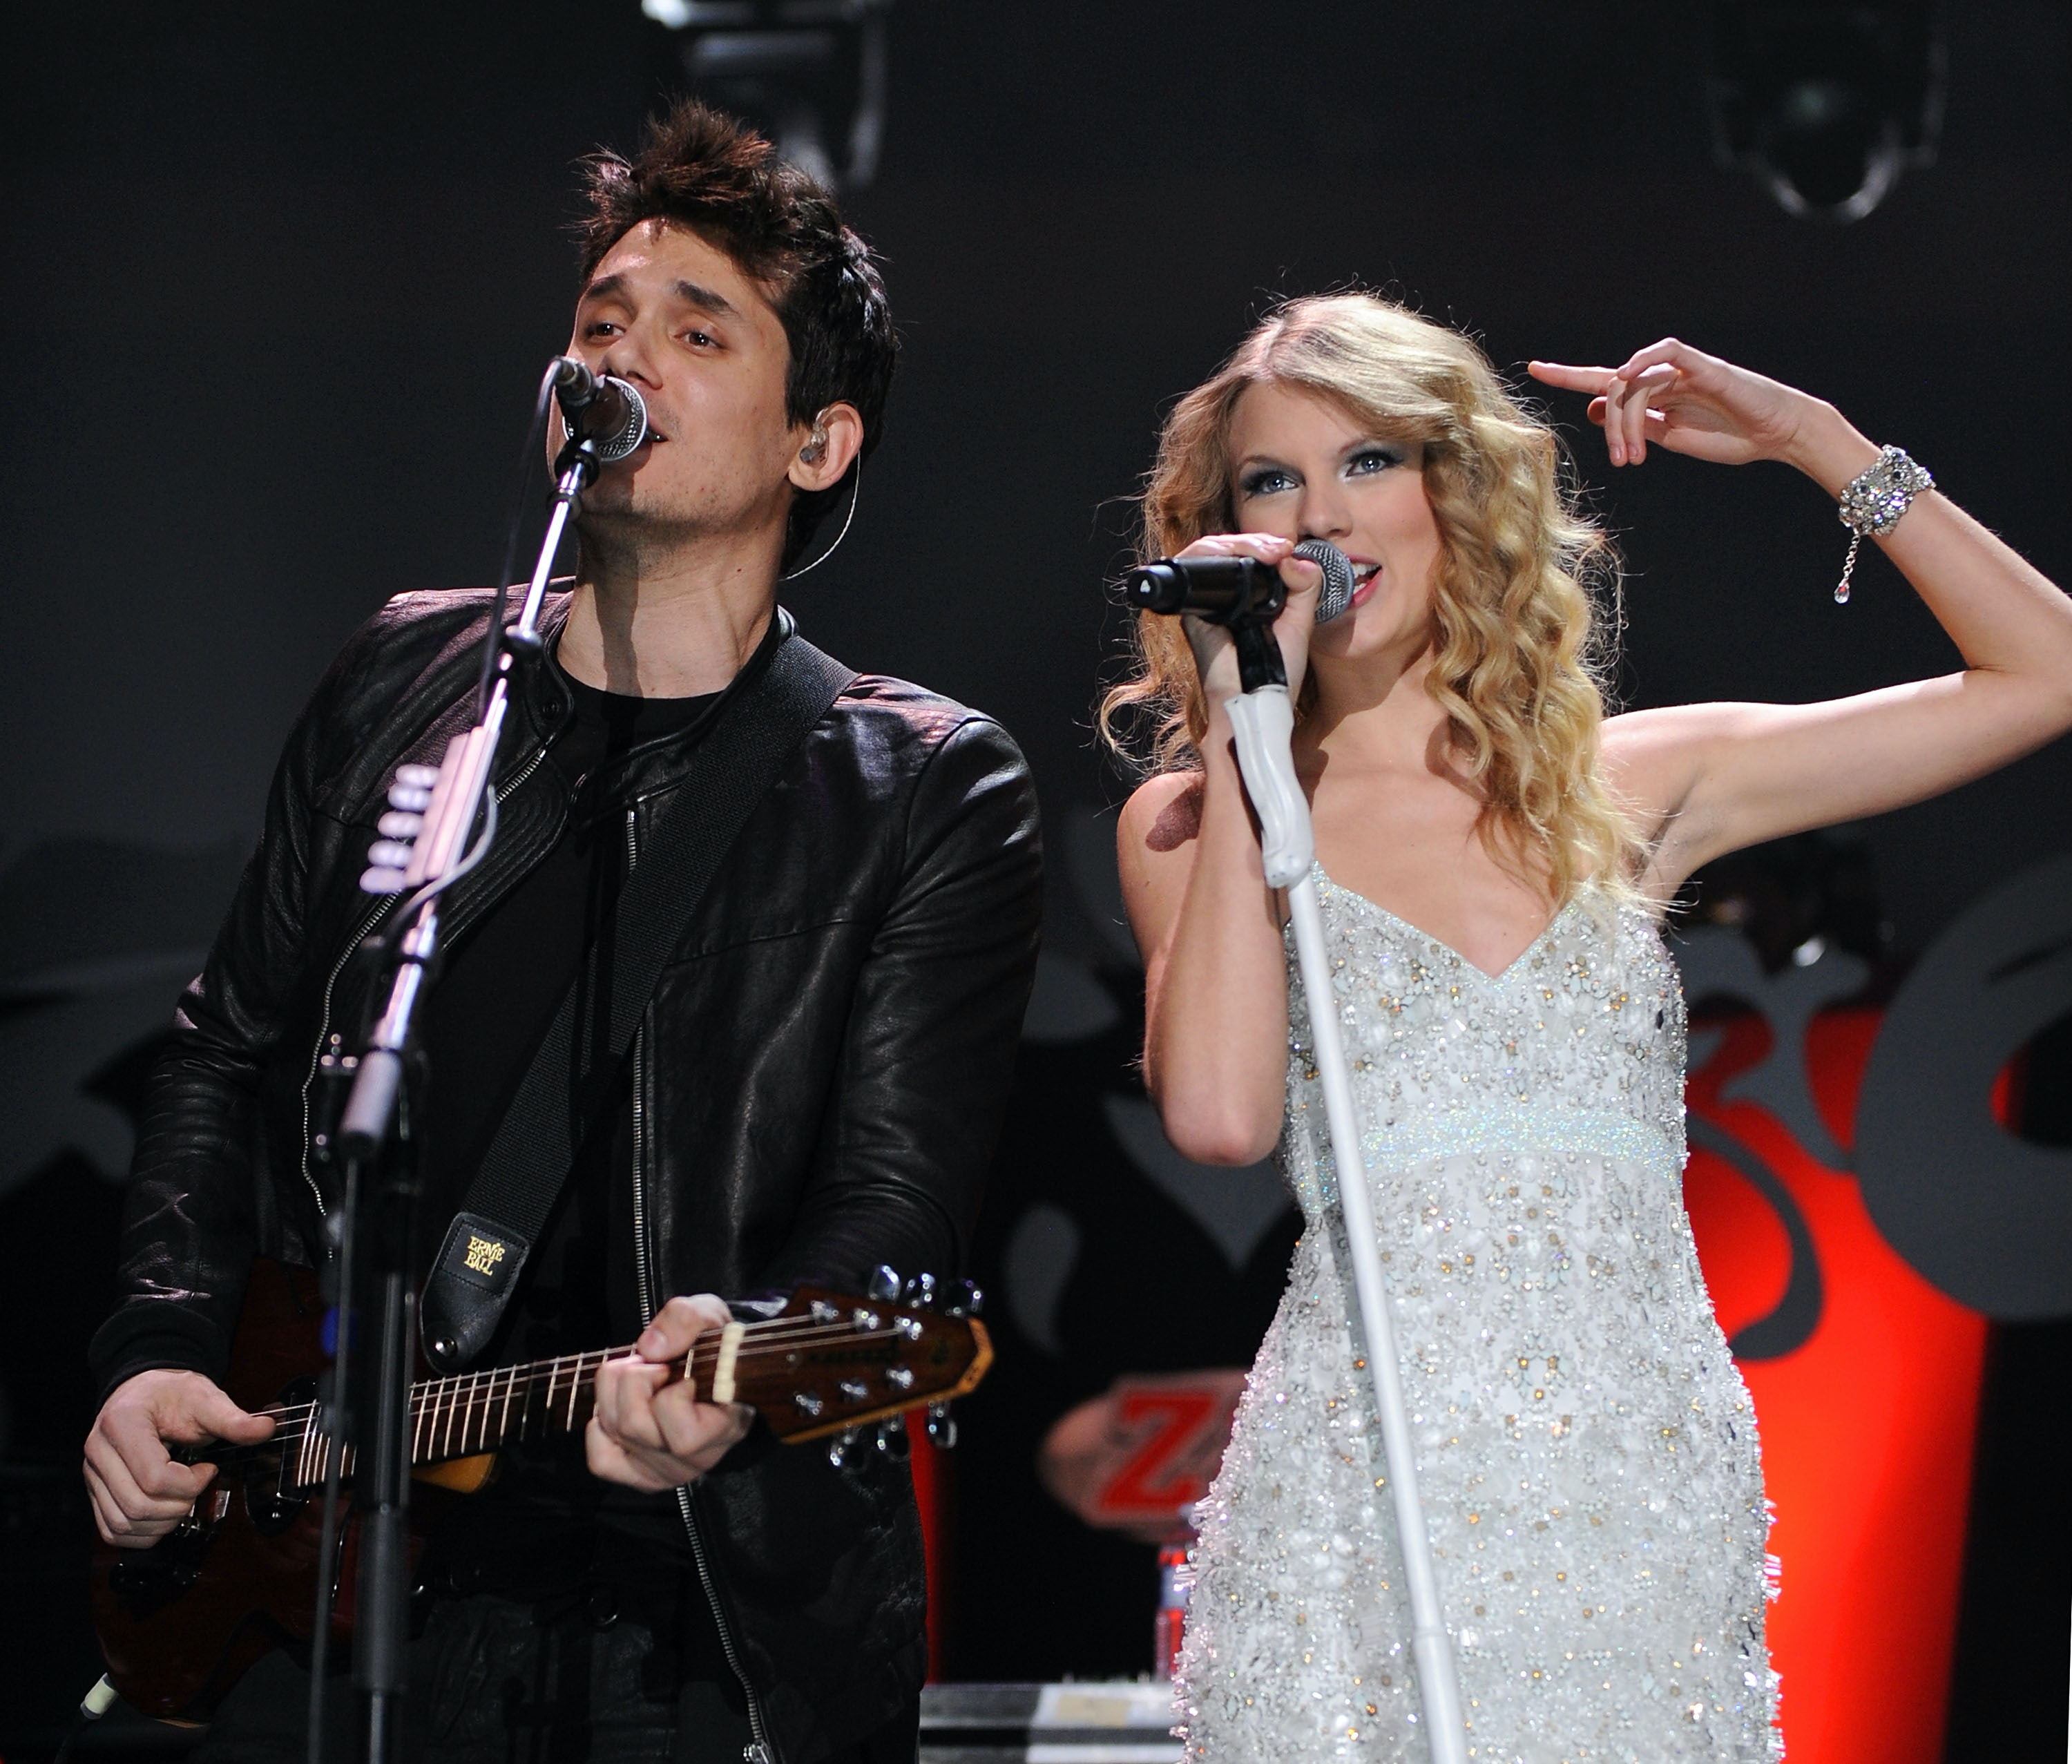 John Mayer S Reaction To Taylor Swift S Reputation Album May Actually Surprise You